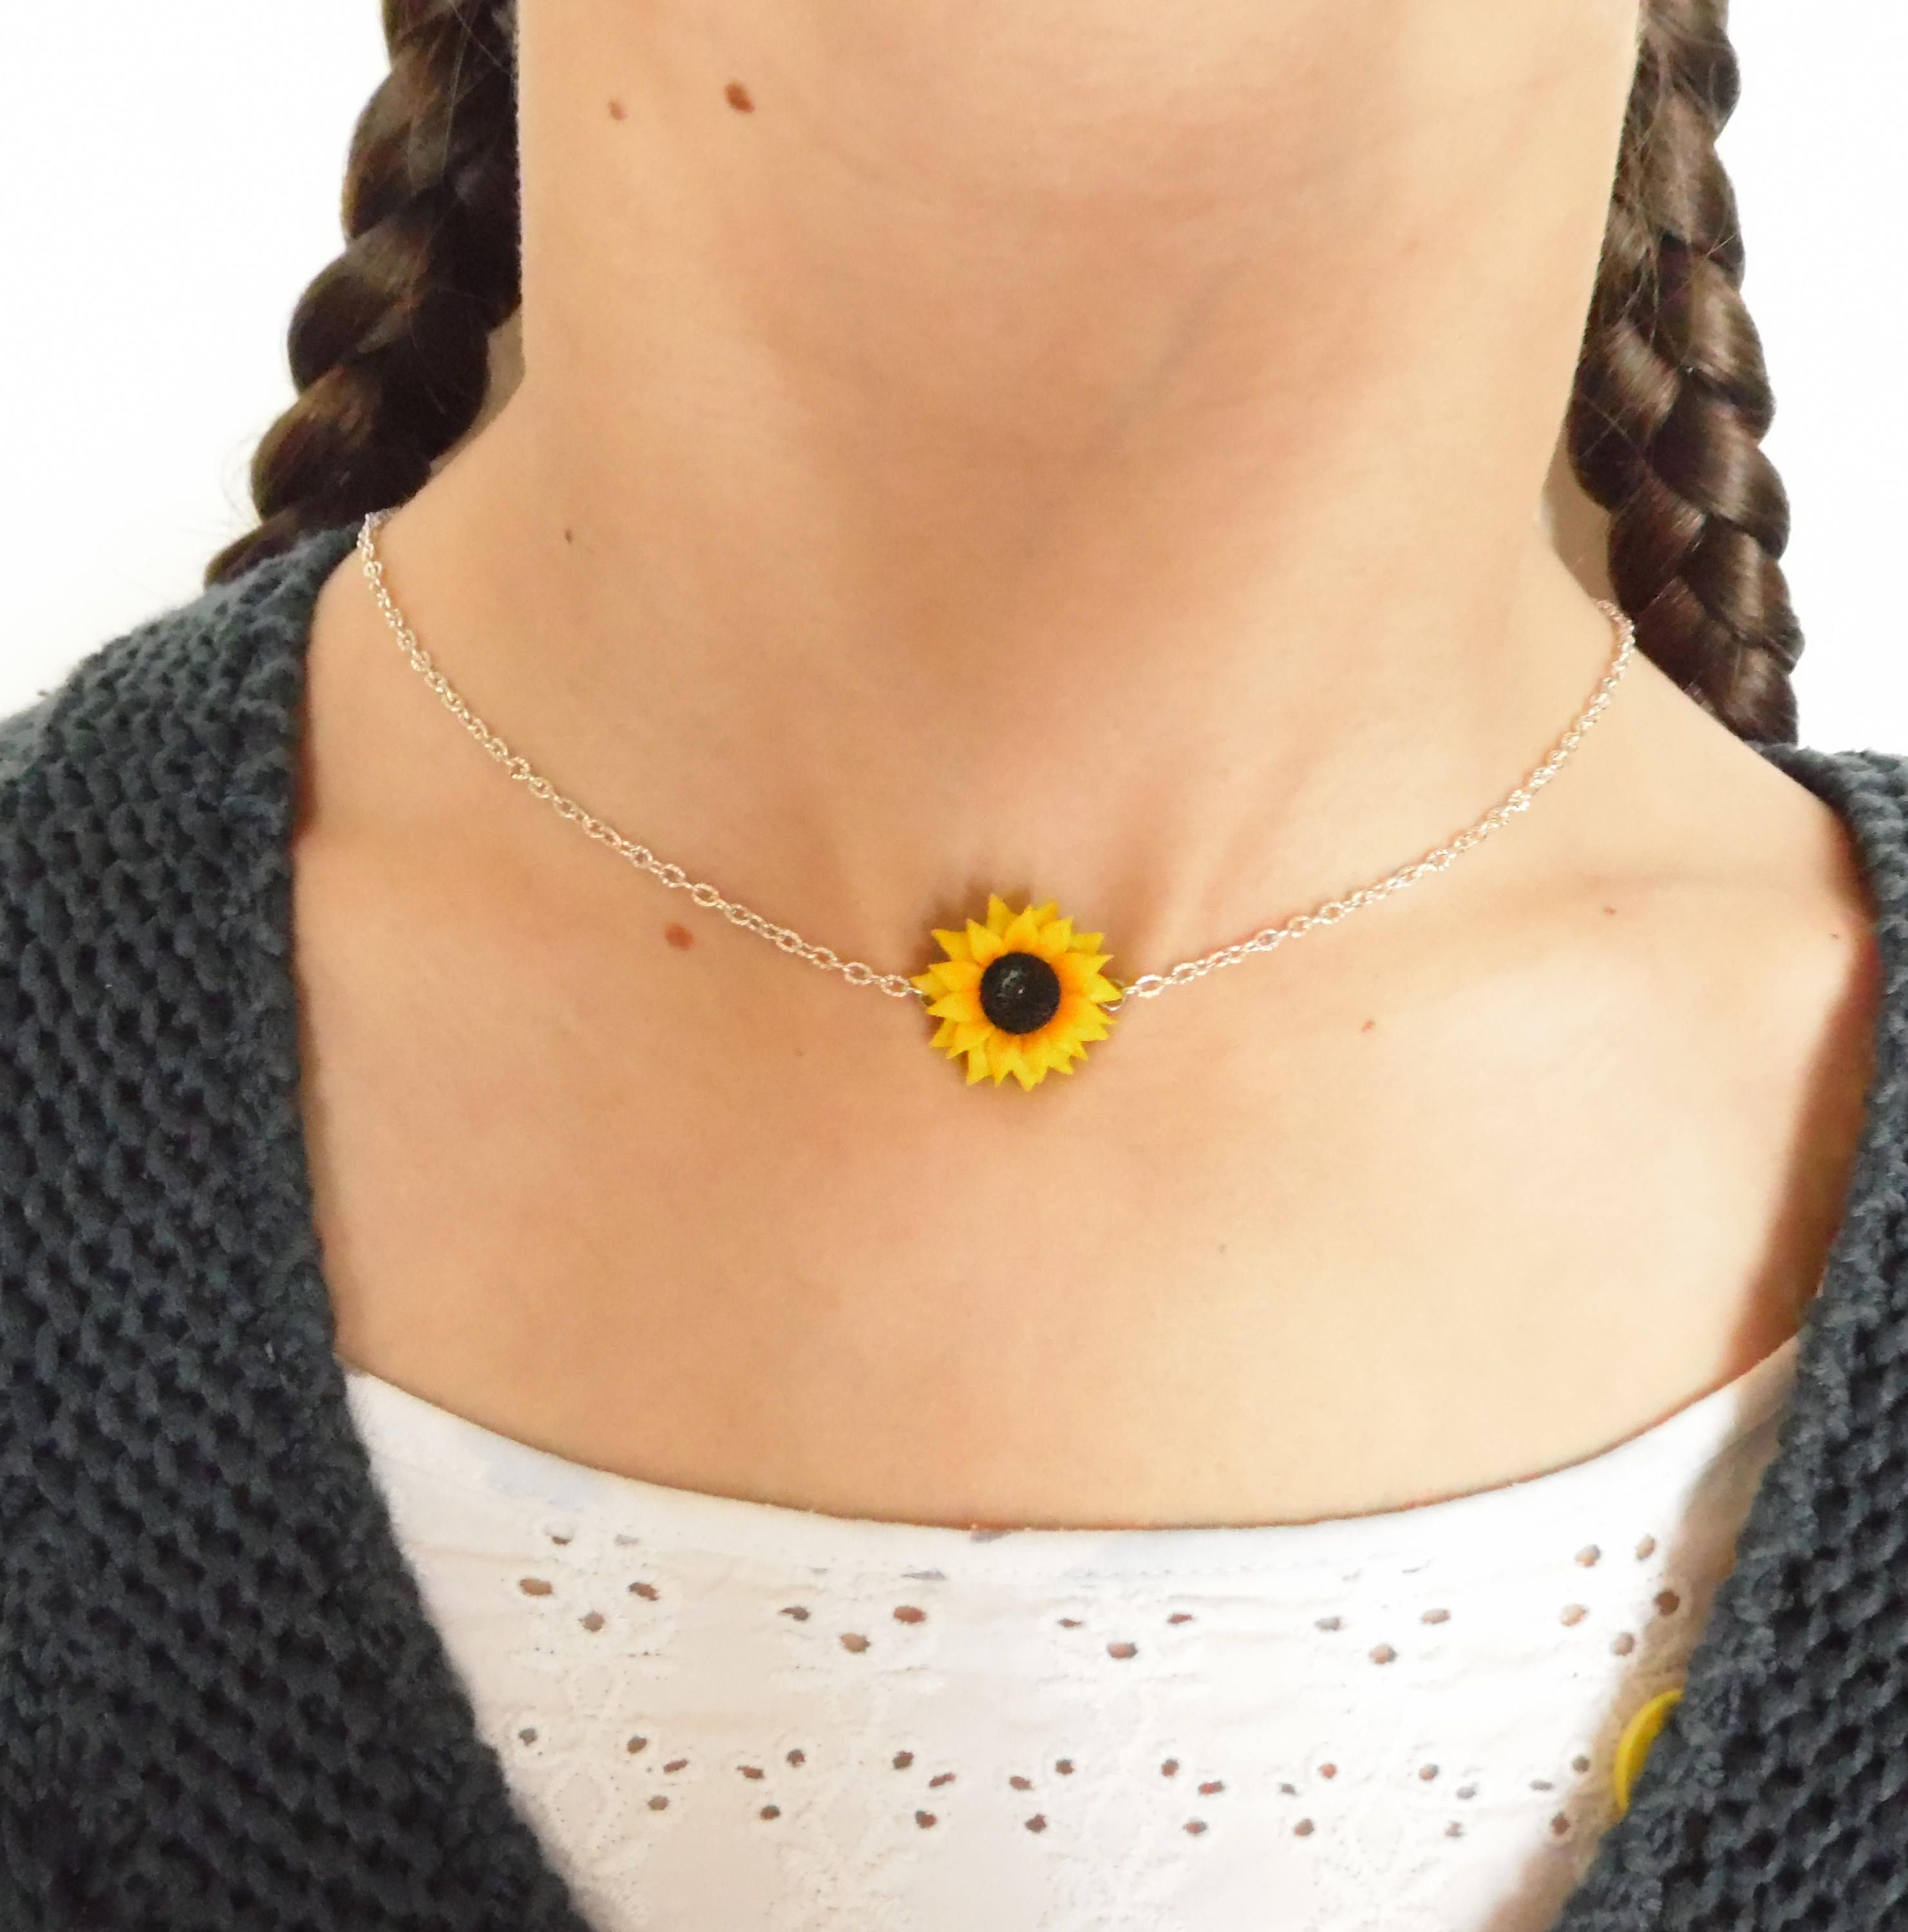 Sunflower choker sunflower necklace sunflower pendant polymer clay sunflower choker sunflower necklace sunflower pendant polymer clay jewelry wedding jewellery sunflower jewelry gift for her bridesmaid jewel aloadofball Image collections